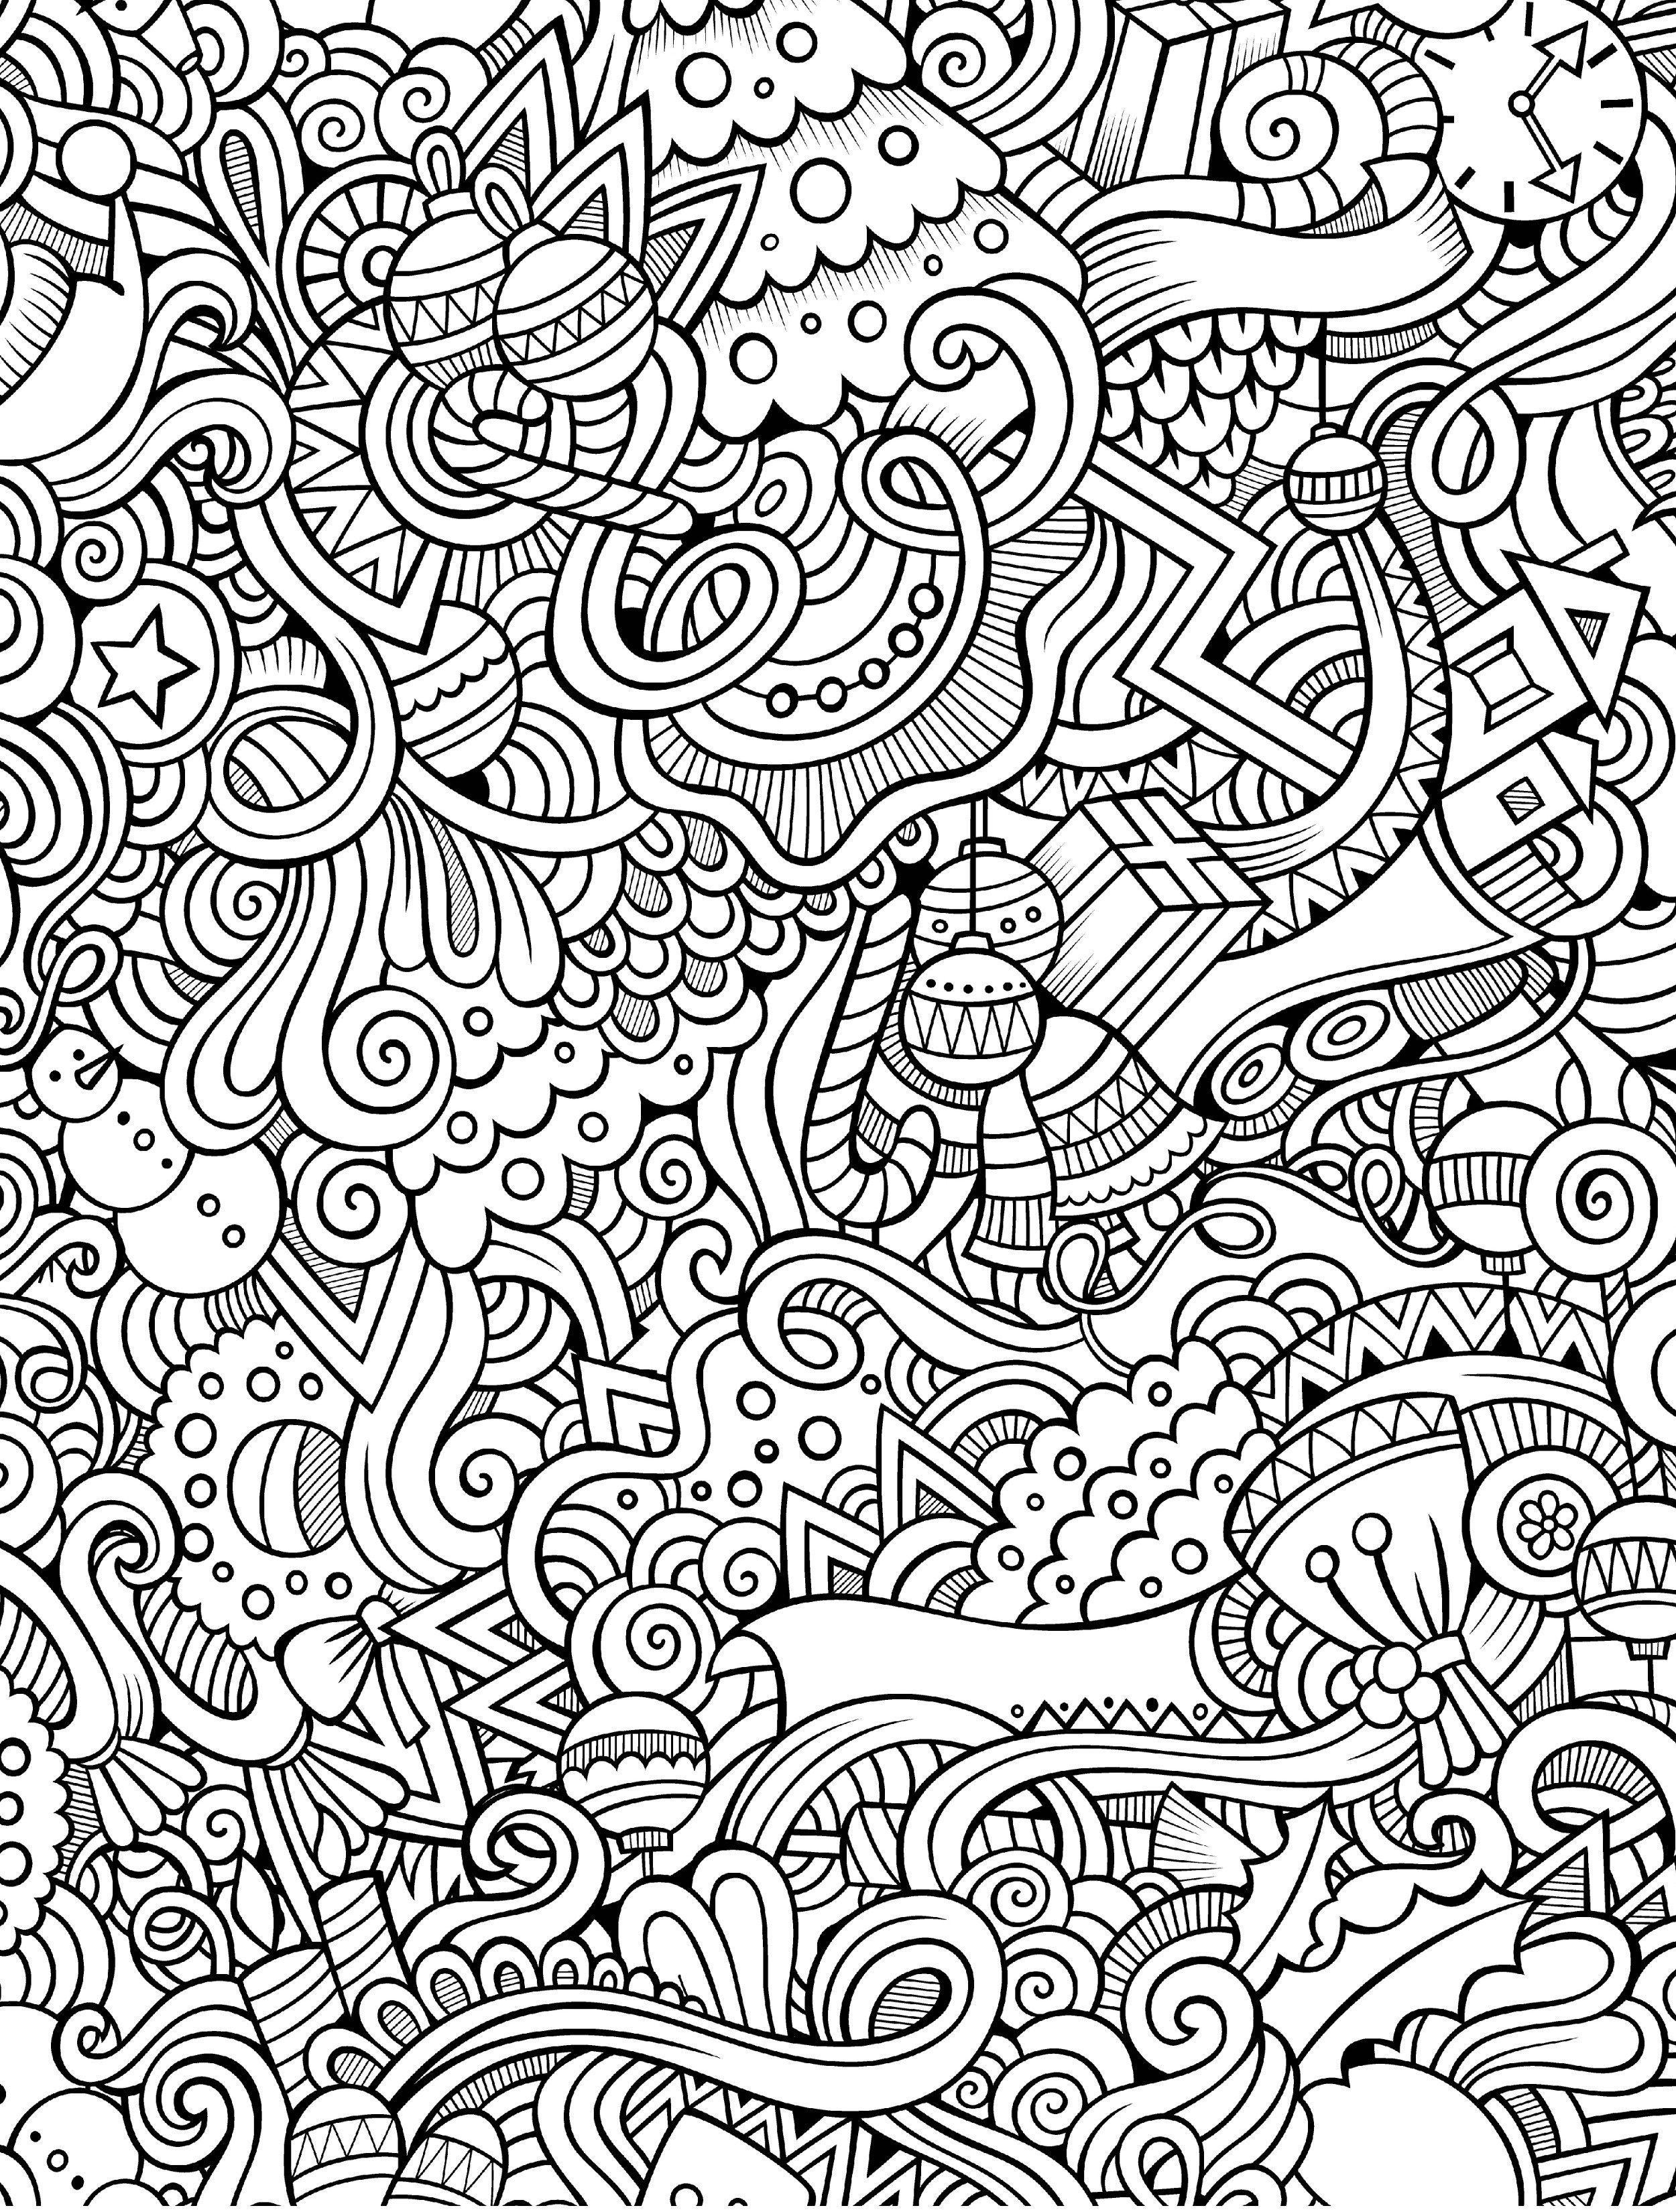 Coloring Pages : Printable Christmas Coloring Bookmarks Free - Free Printable Christmas Bookmarks To Color